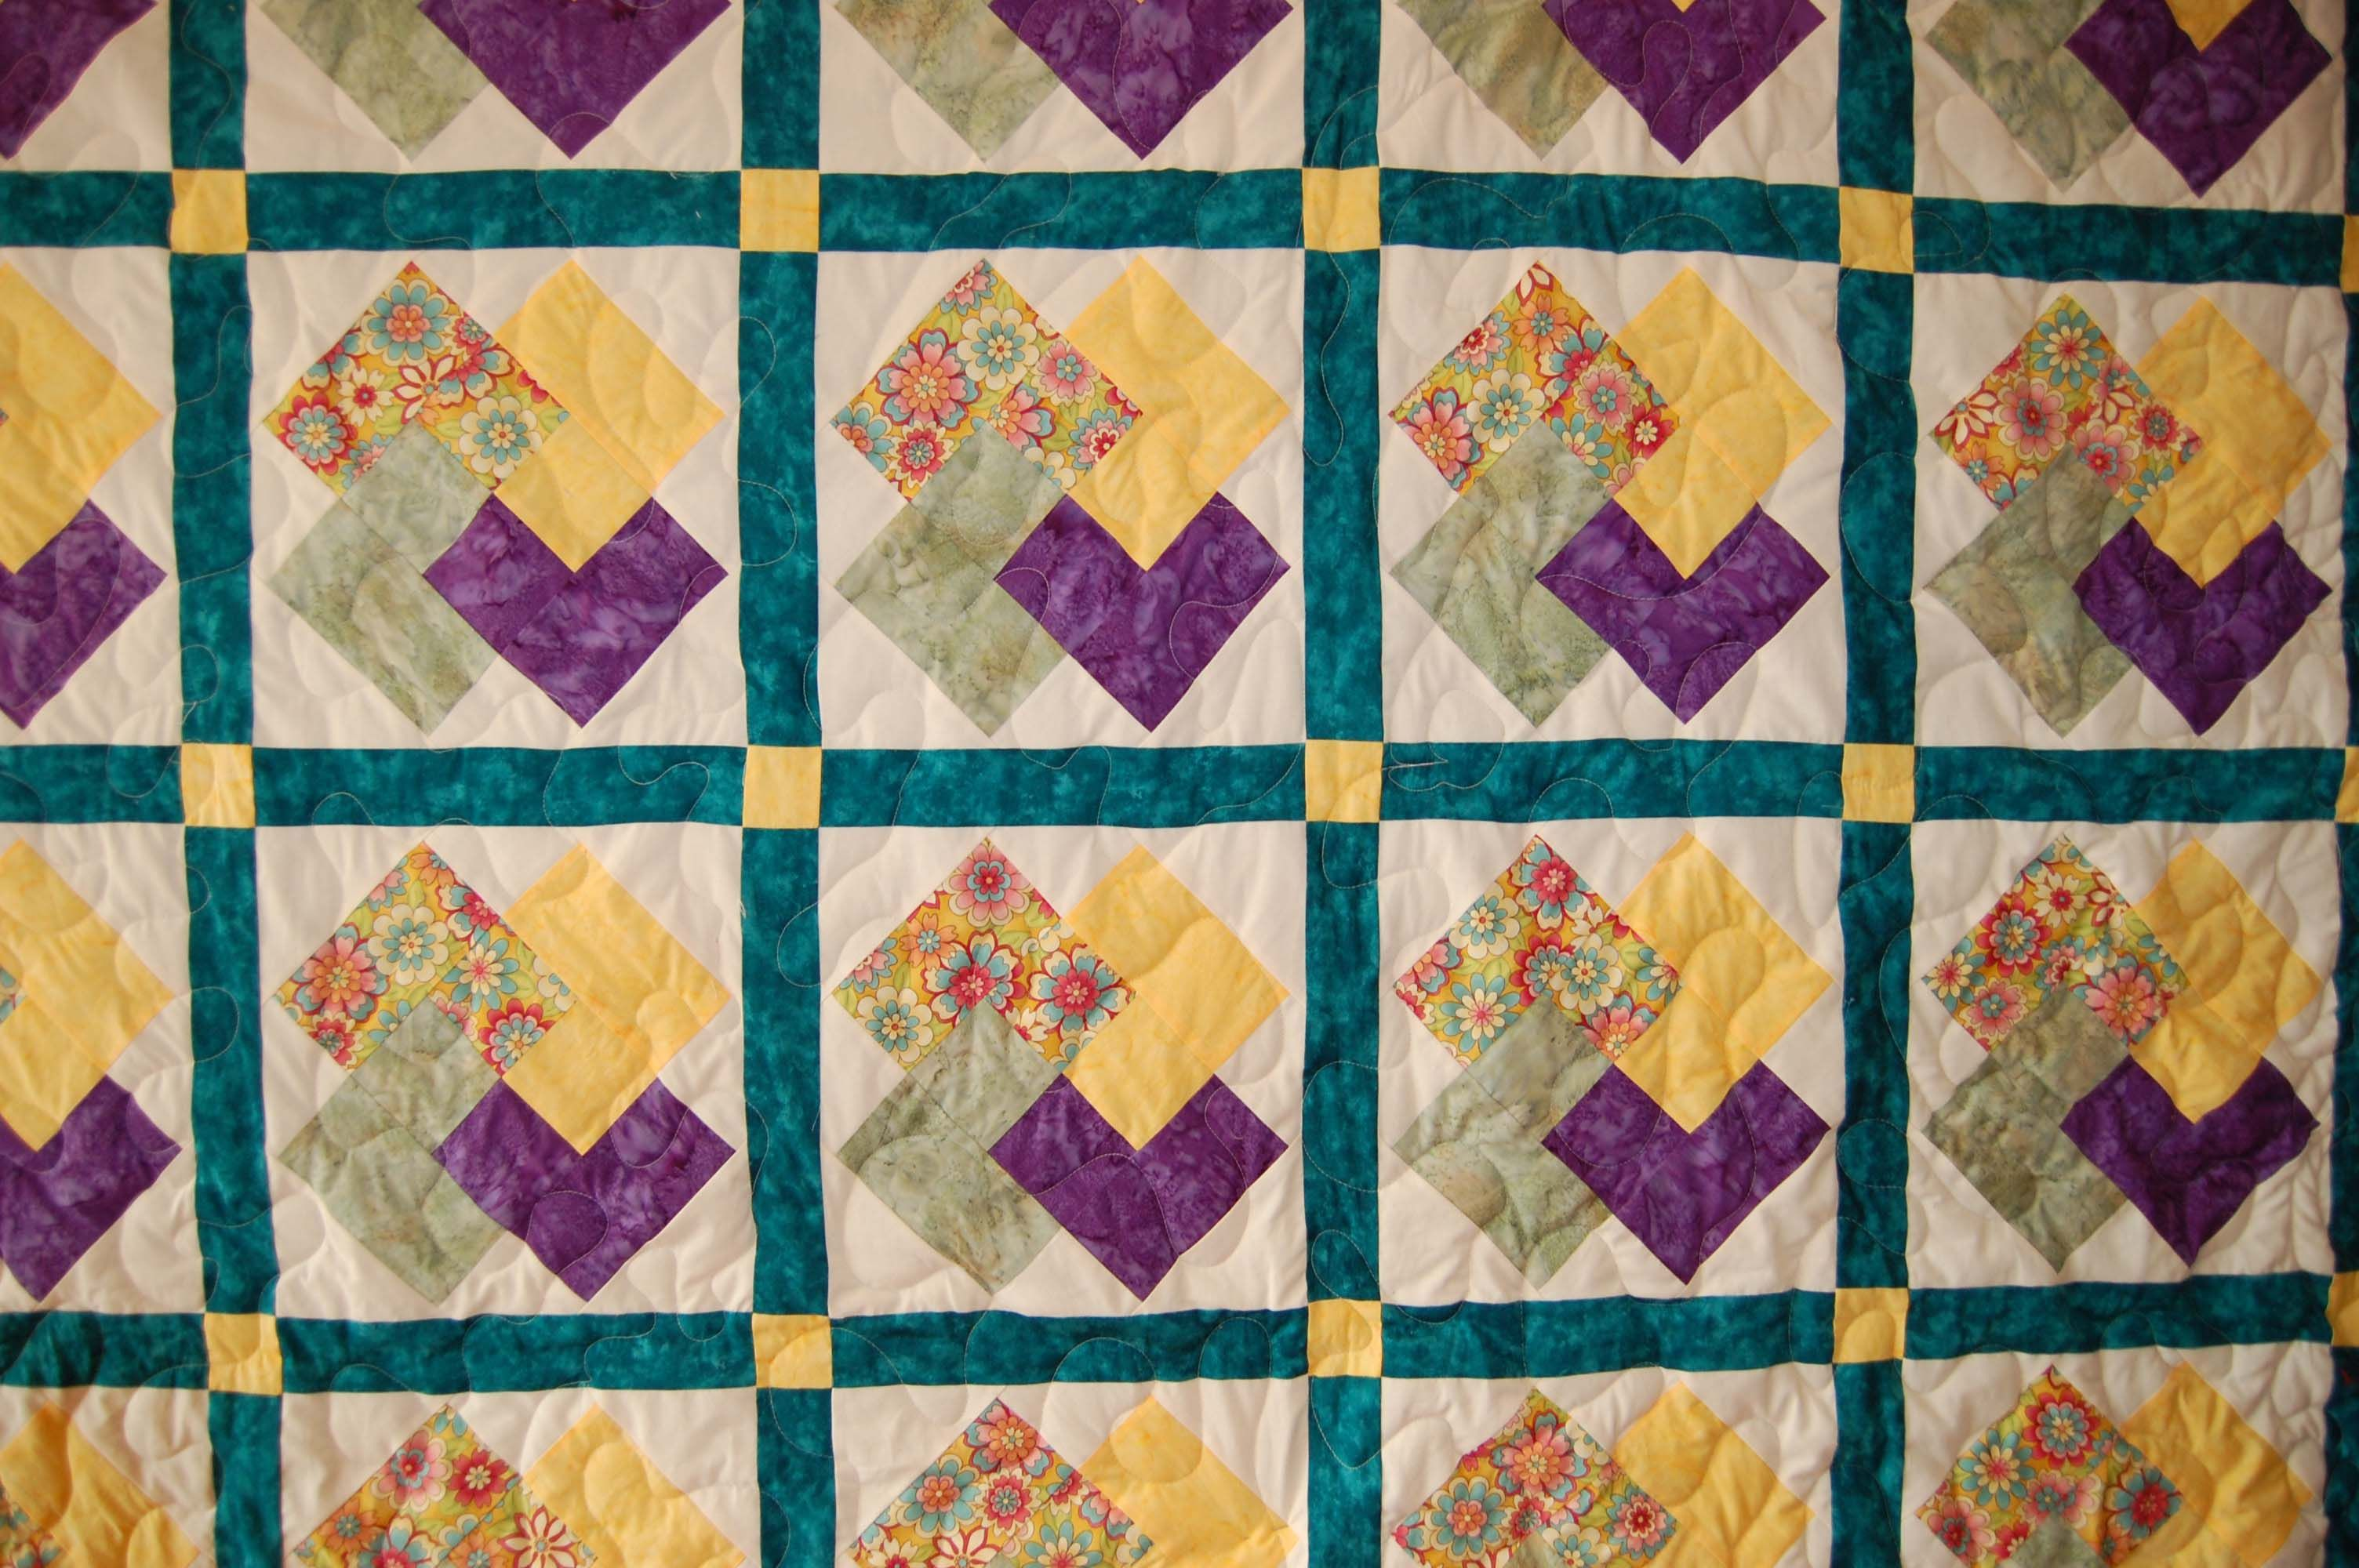 Winning Hand Quilt Pattern This Is My Card Trick Quilt Based On Elenor Burns Winning Hand Scandinavian Quilts Quilts Quilting Designs